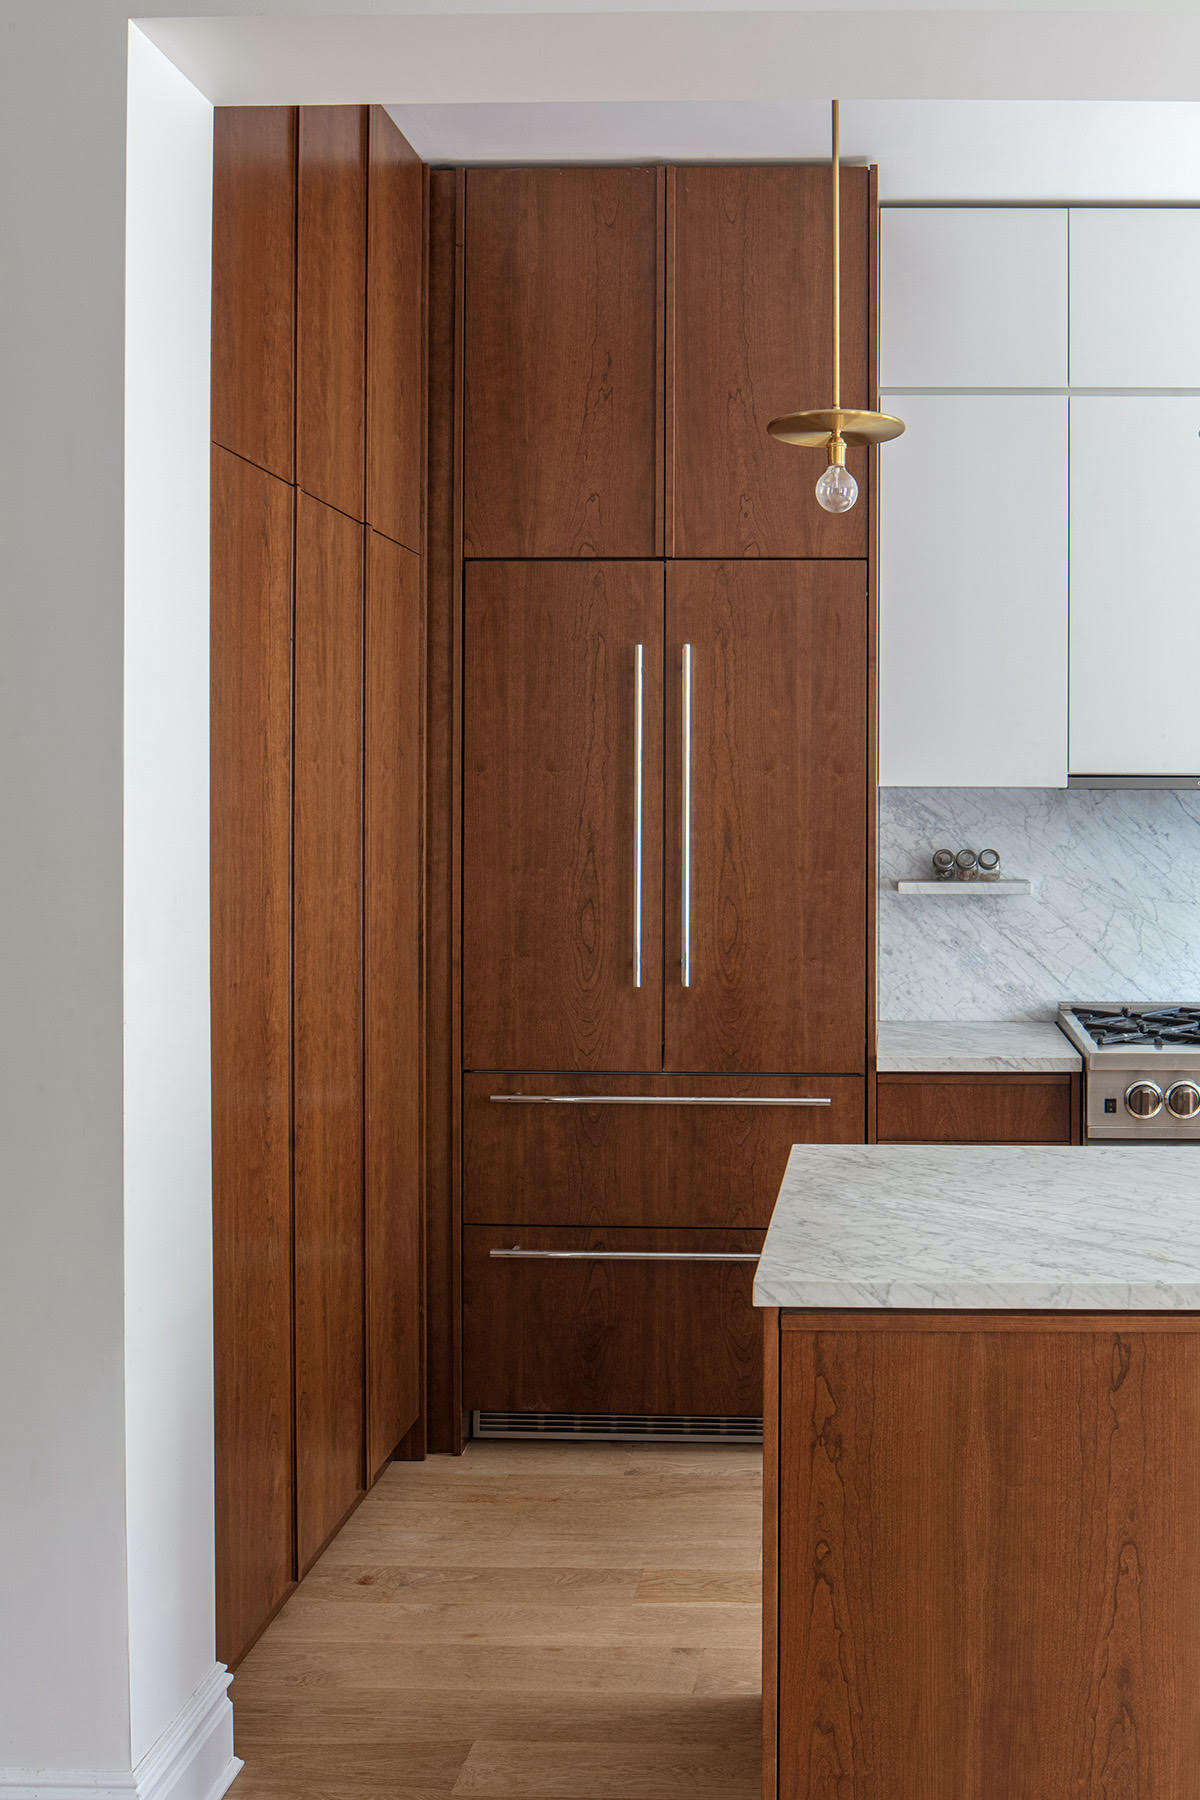 The fridge is a 36-inch-wide, panel-ready Liebherr.